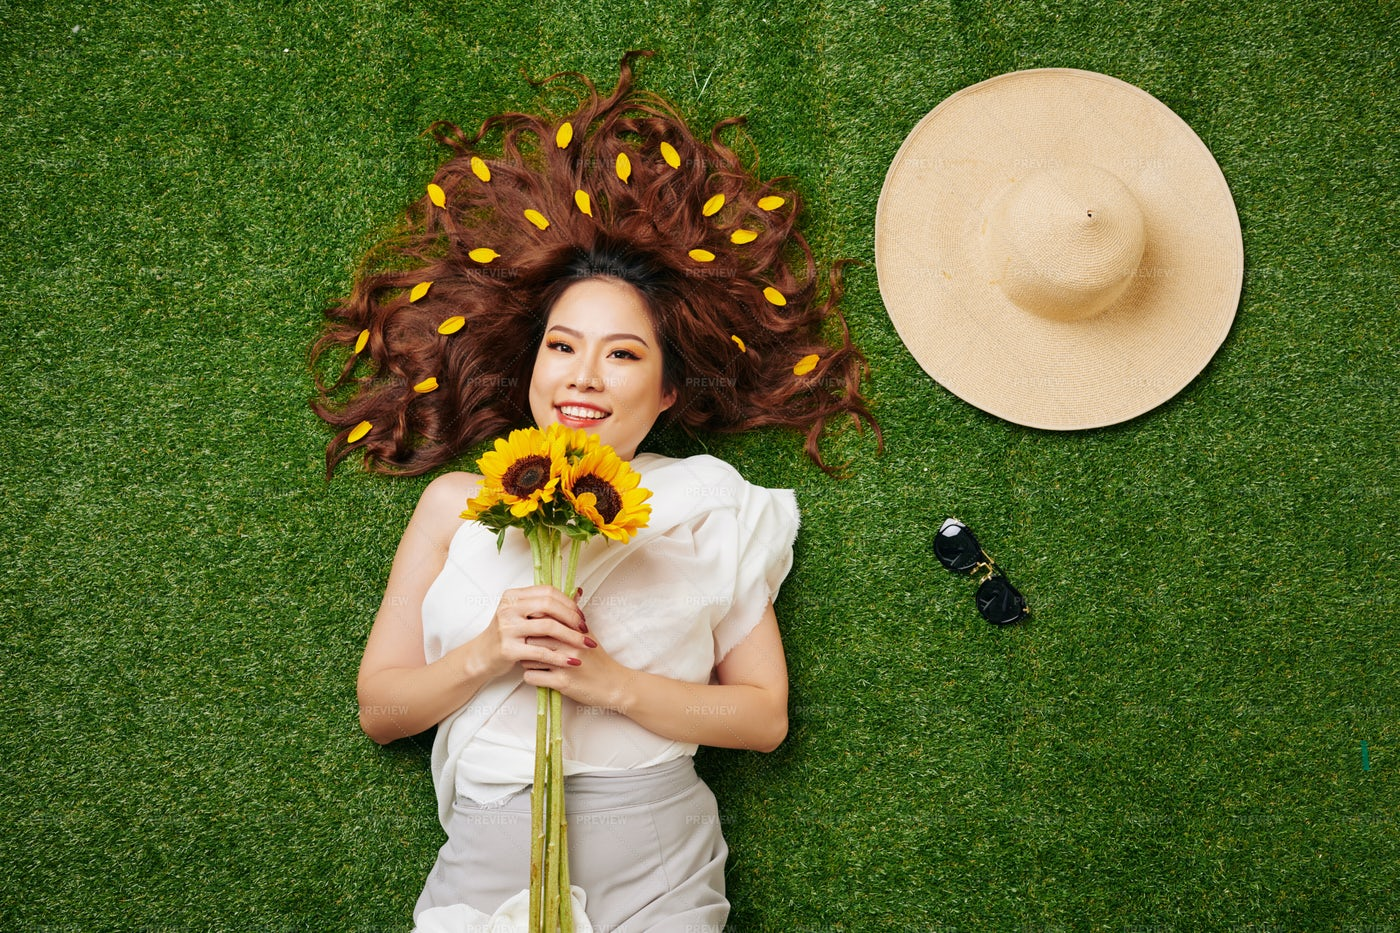 Woman With Sunflowers On The Grass: Stock Photos